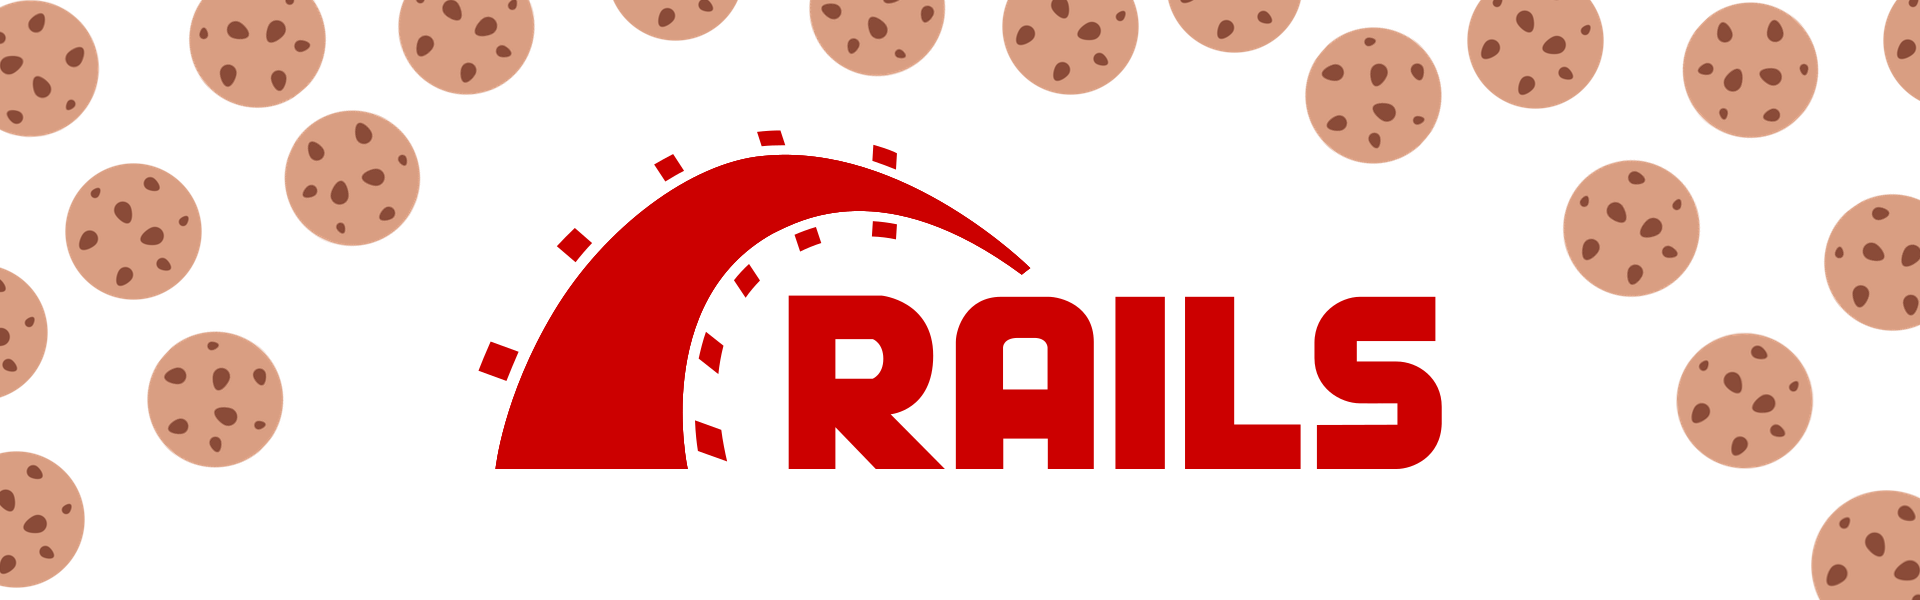 The Ruby on Rails logo surrounded by cookies